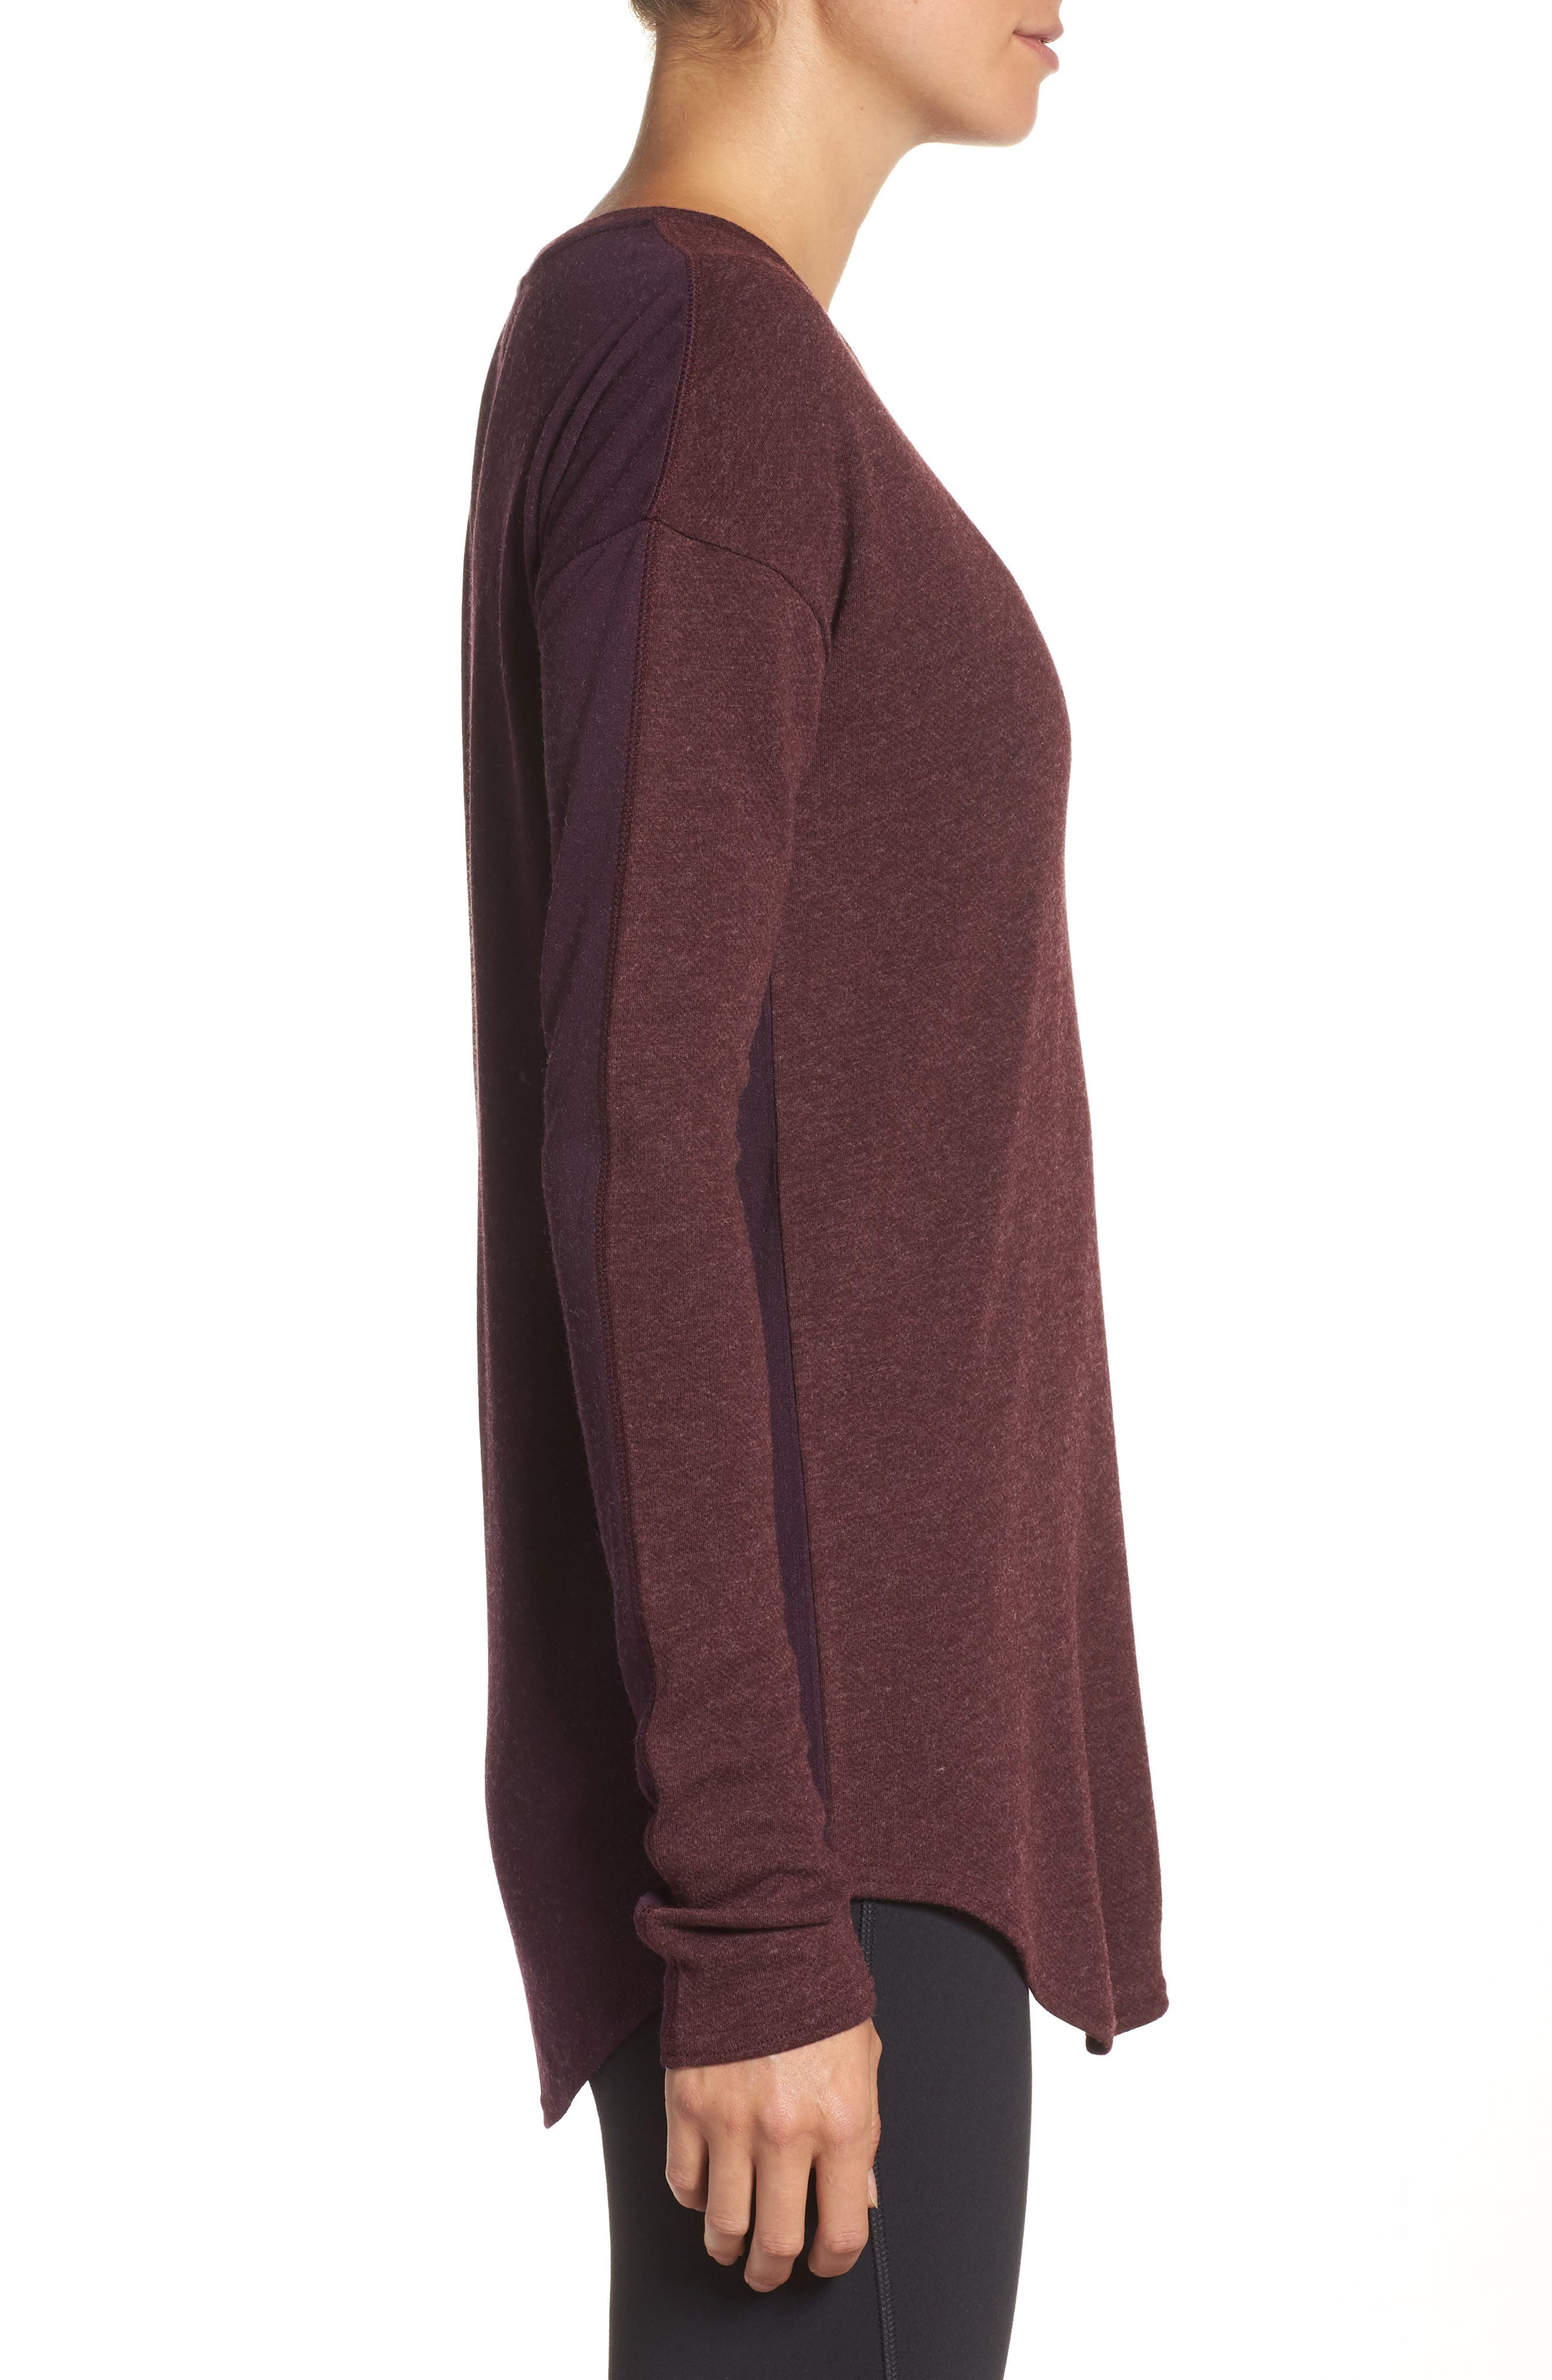 247 Luxe Long Sleeve Tee,                             Alternate thumbnail 3, color,                             930